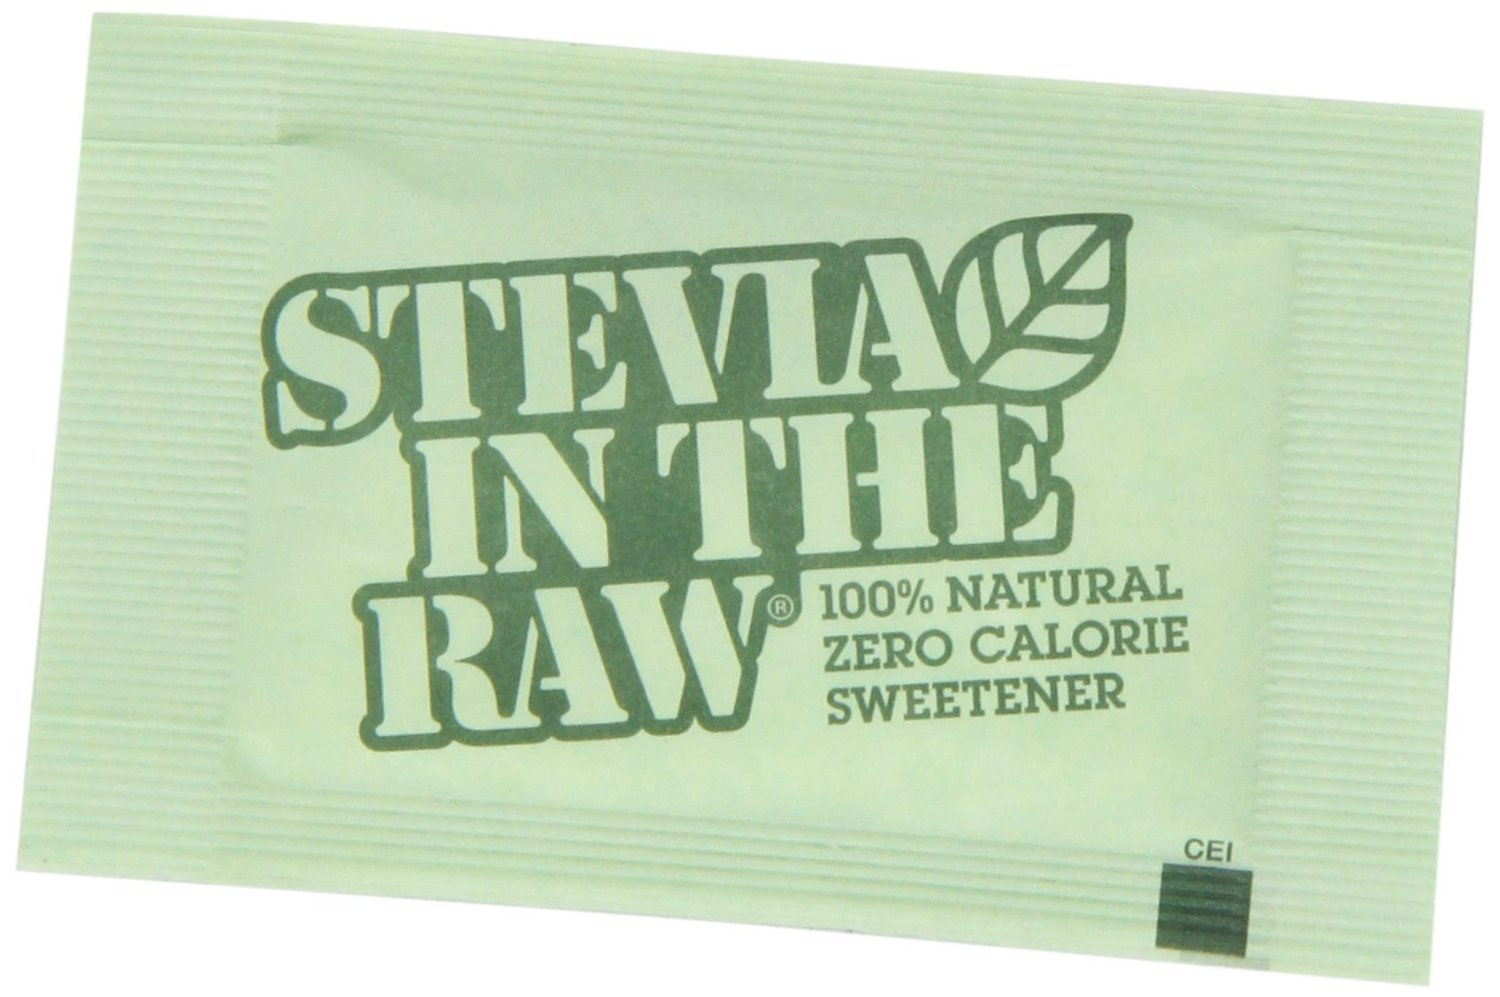 Stevia Extract In The Raw Zero Calorie Sweetener, 1000 Count Box (Pack of 4) by Sugar Foods